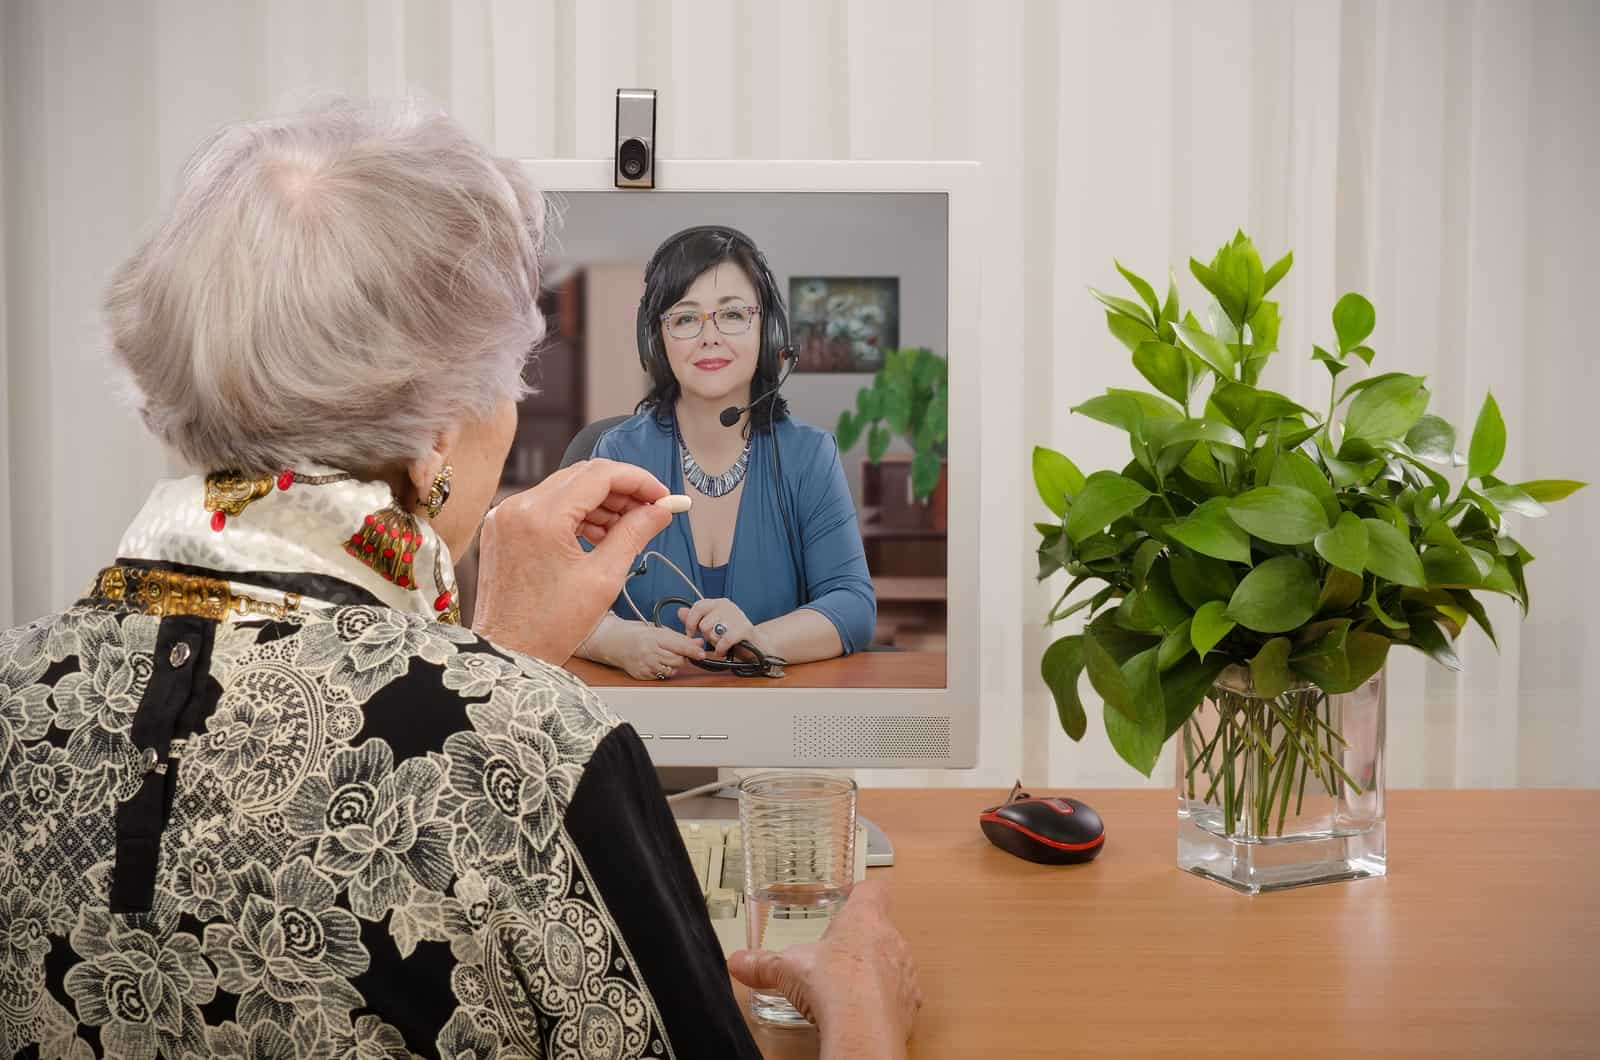 But Do Patients Want Telehealth? The Survey Says 'Yes!'